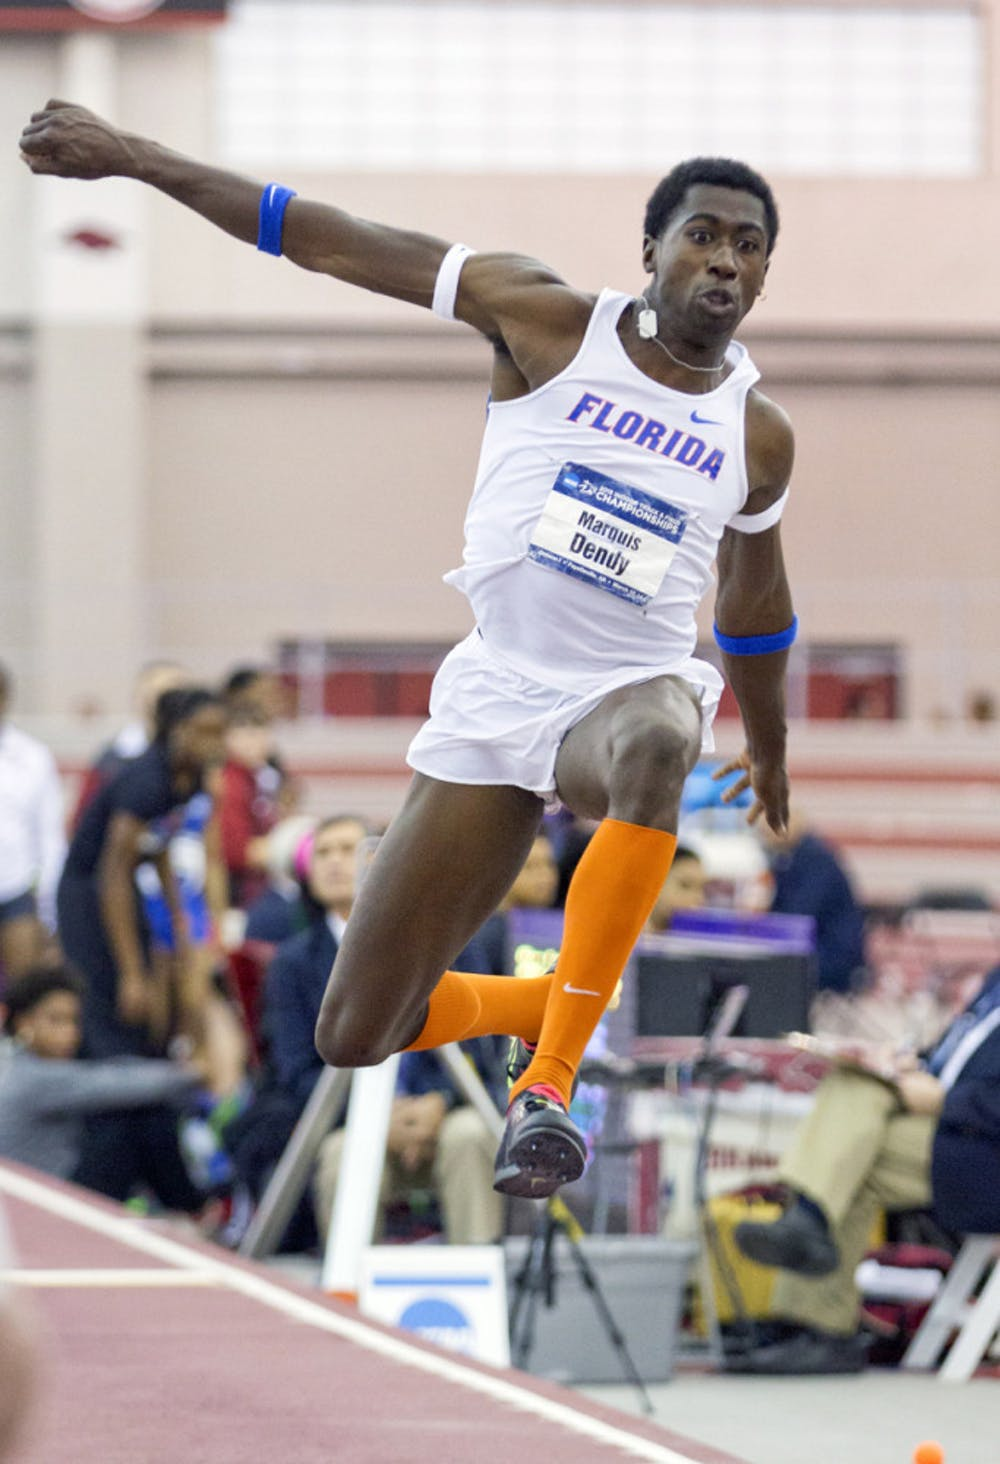 <p>Marquis Dendy competes in the triple jump during the 2015 NCAA Indoor Championships on March 14 in Fayetteville, Arkansas.</p>